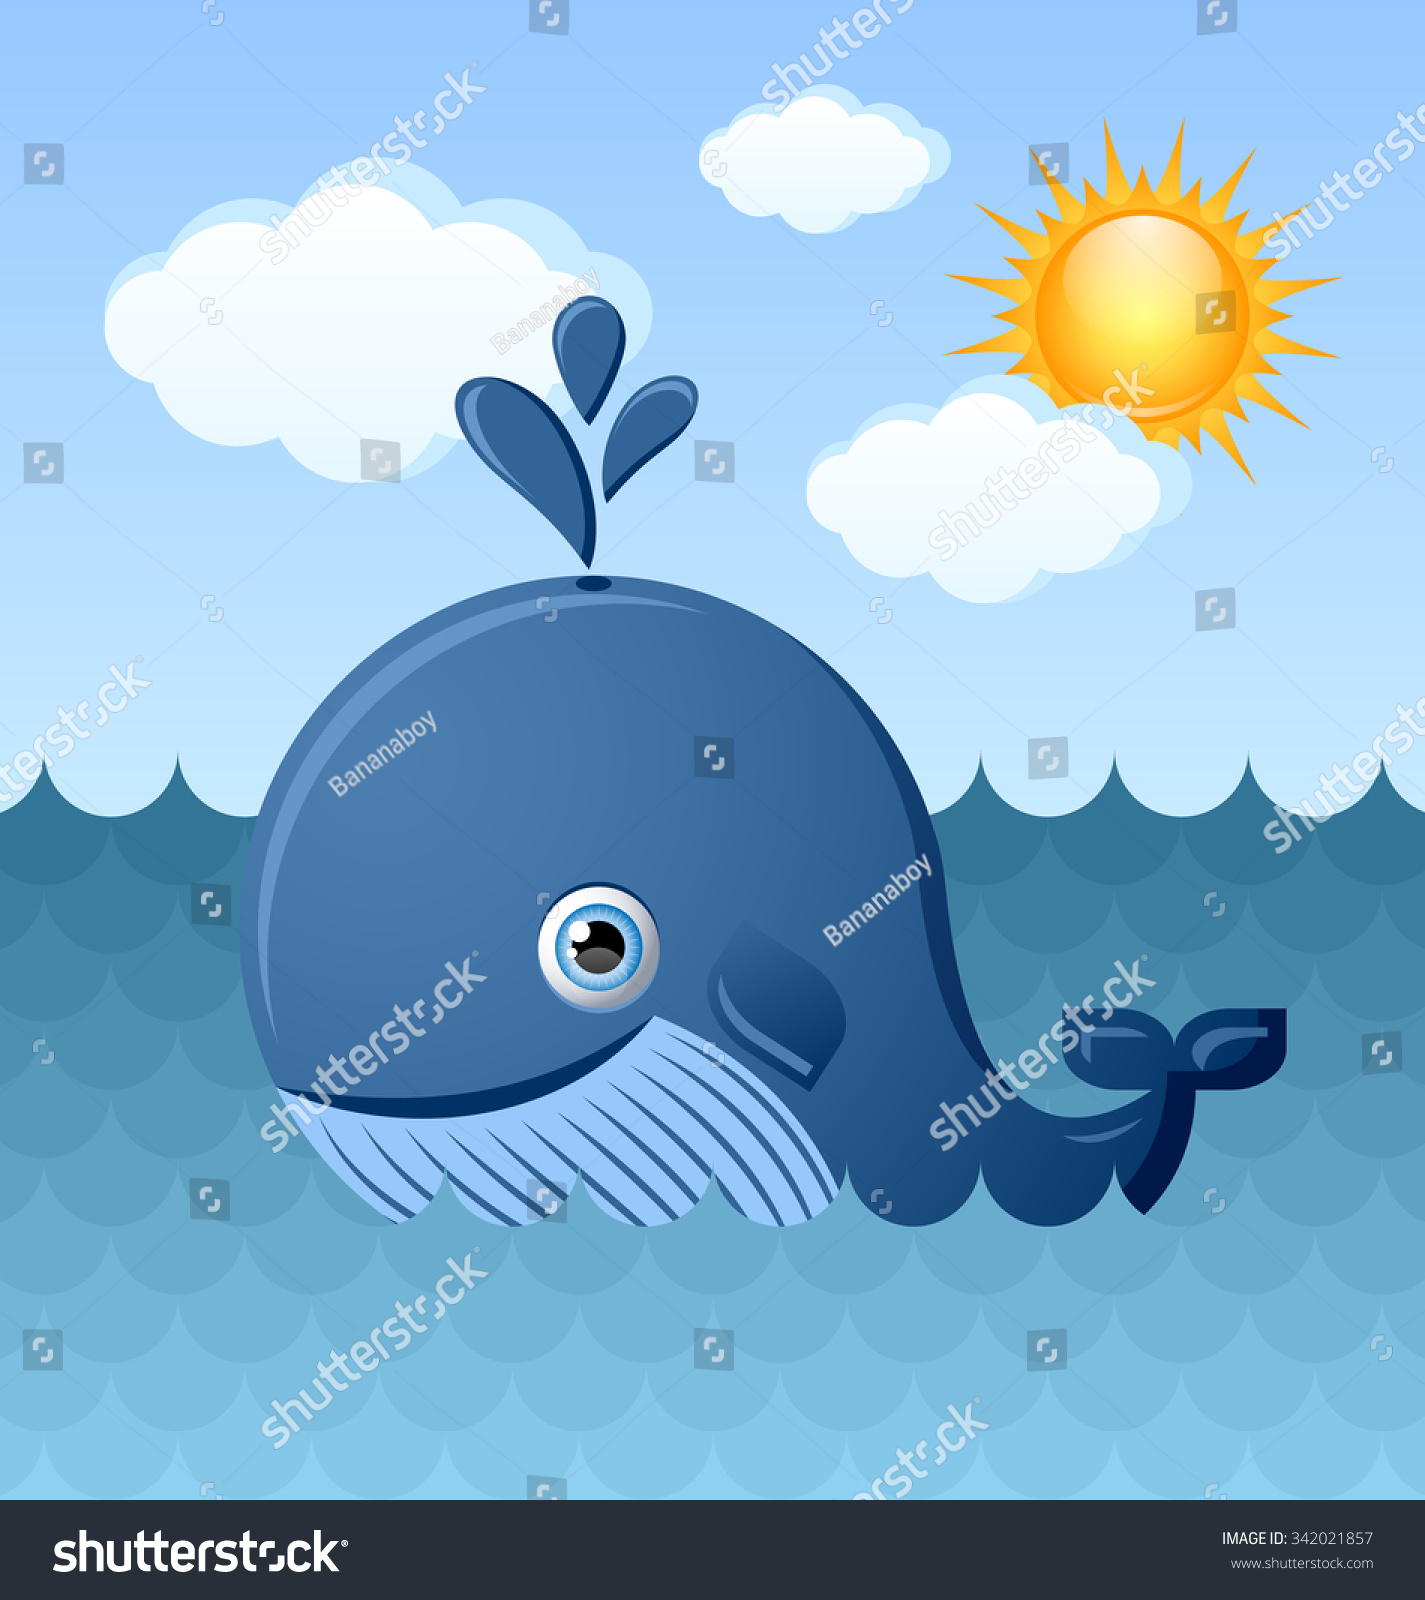 Killer Whale Stock Photos And Images  123RF